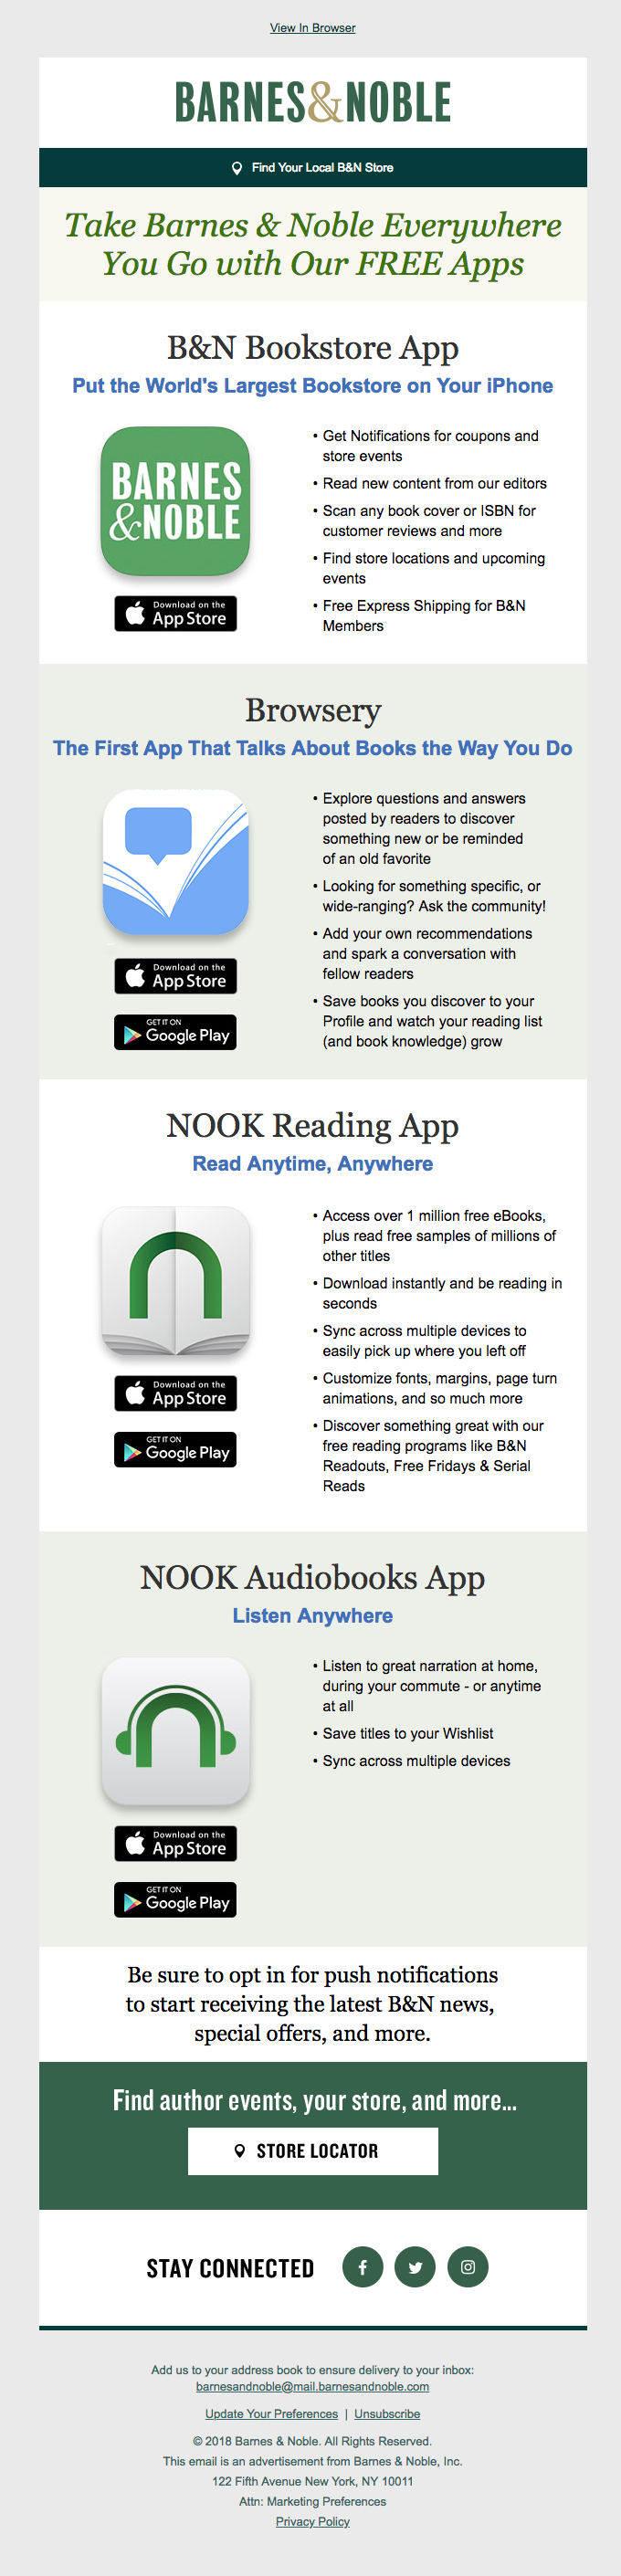 Free Apps for Exclusive B&N Content, Digital Reading & More